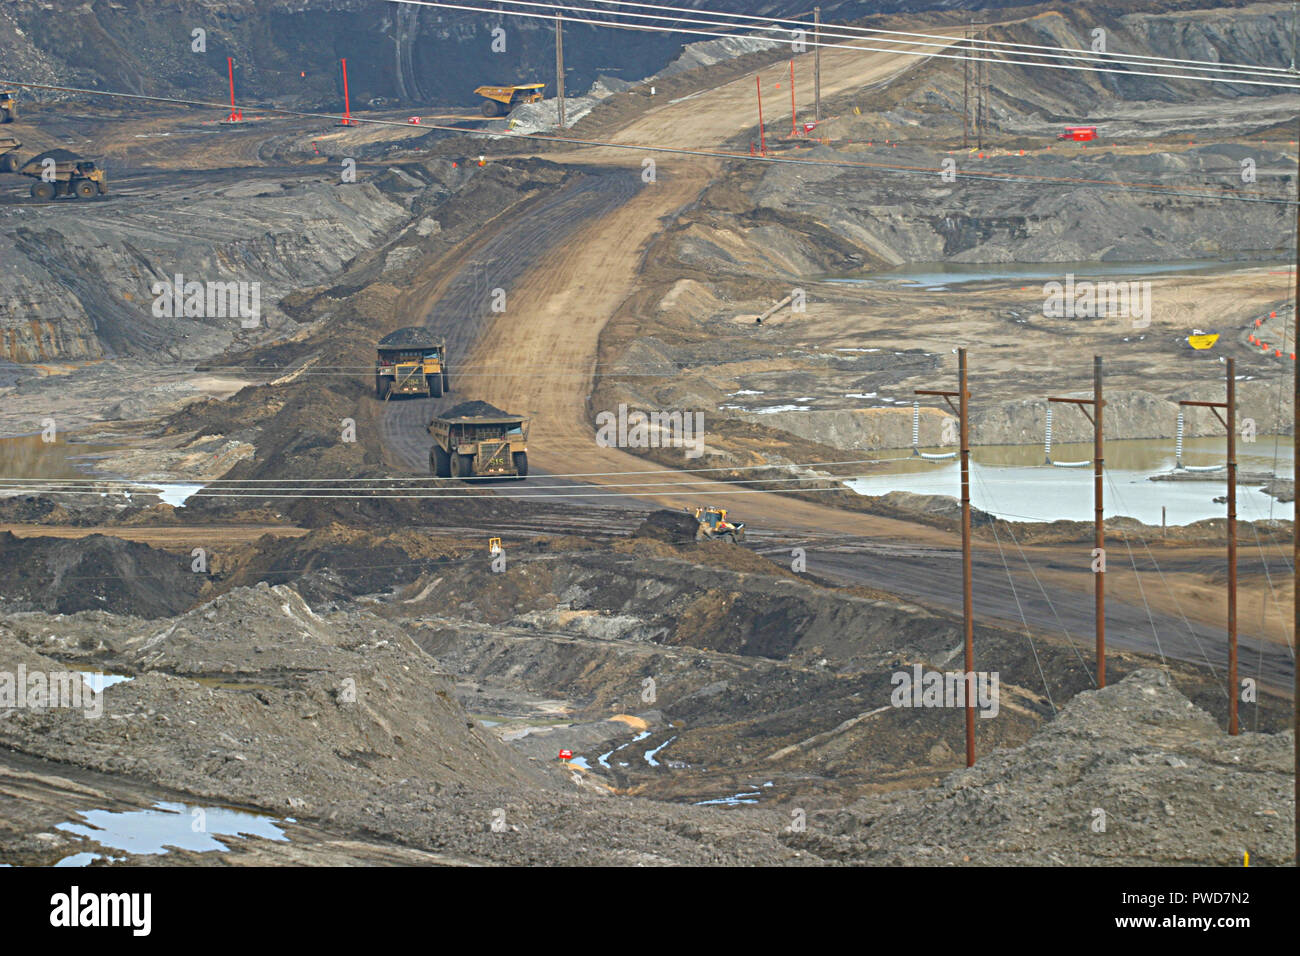 OIL SANDS, Tar Sands, Fort McMurray Alberta, Canada. The world's largest petroleum resource basin. Stock Photo